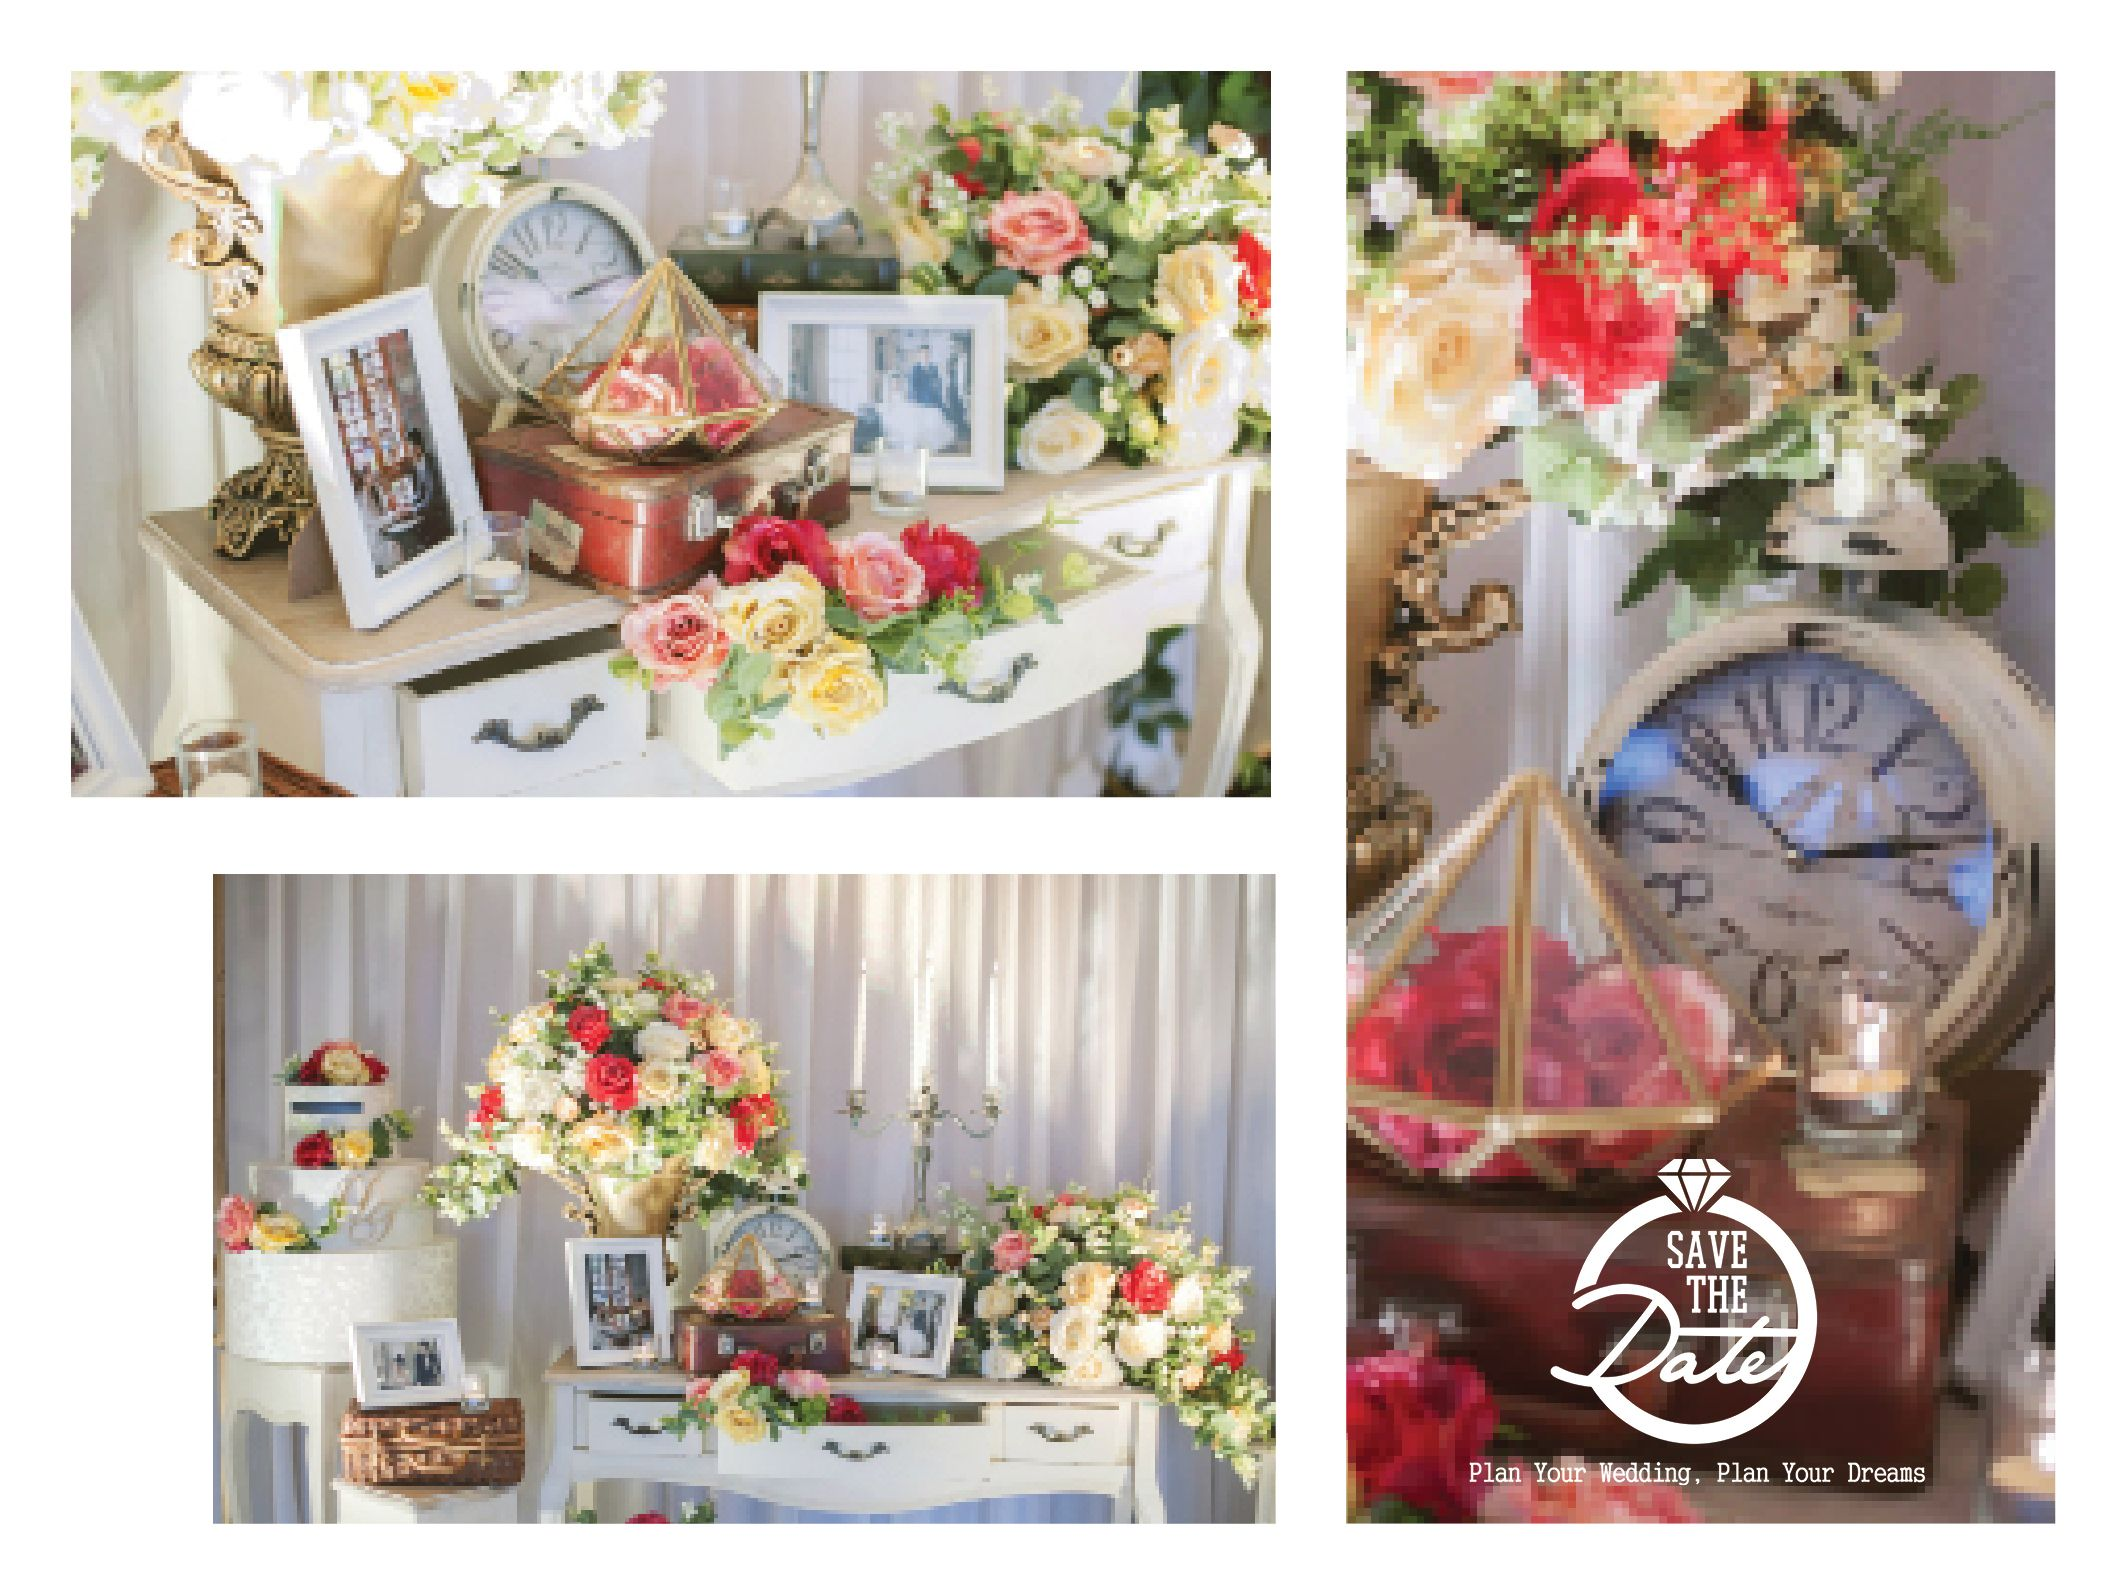 Classic style for your wedding